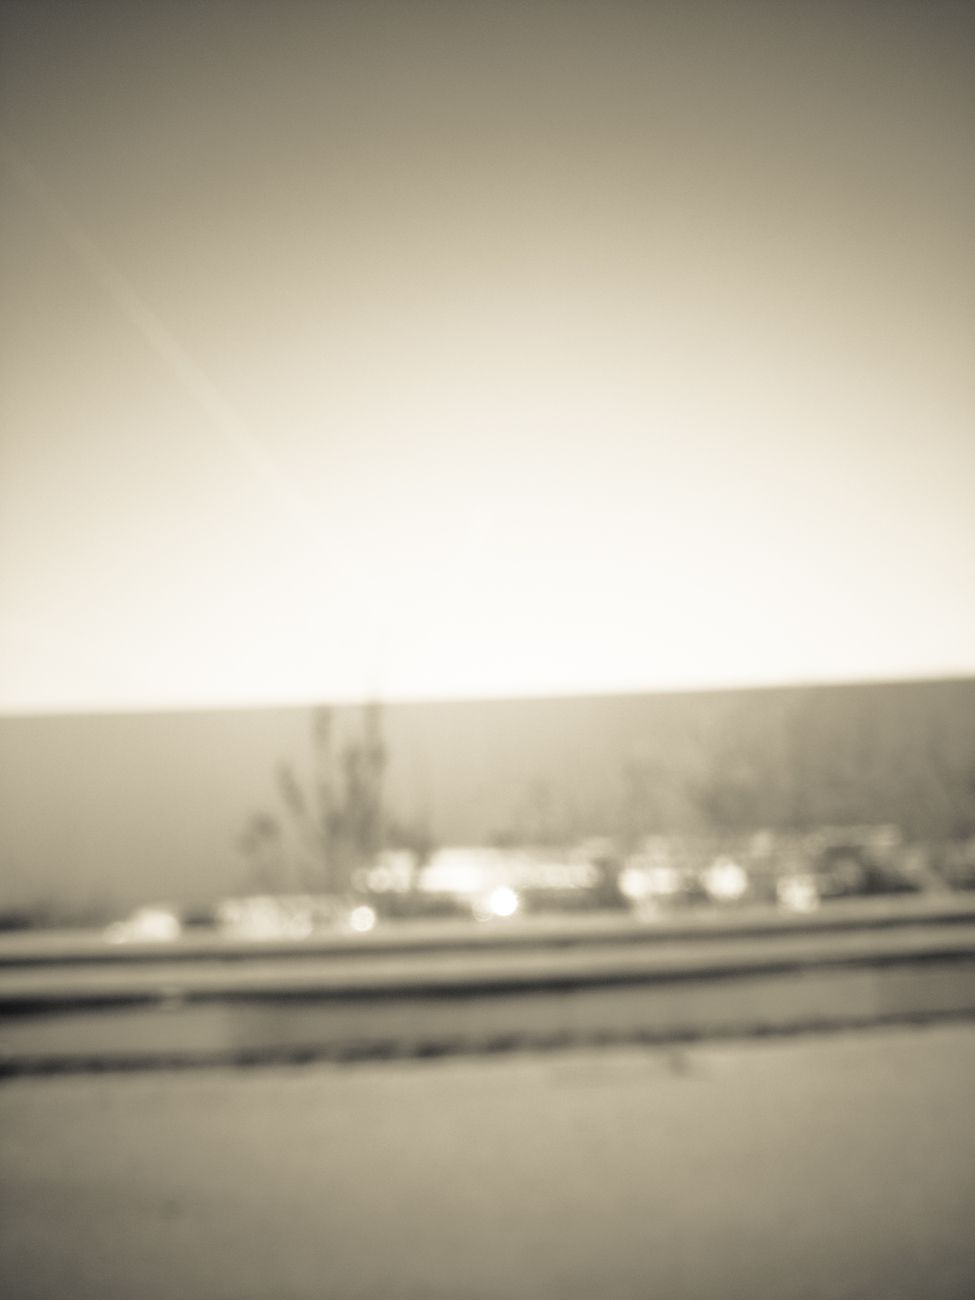 Blurry shot, passing by